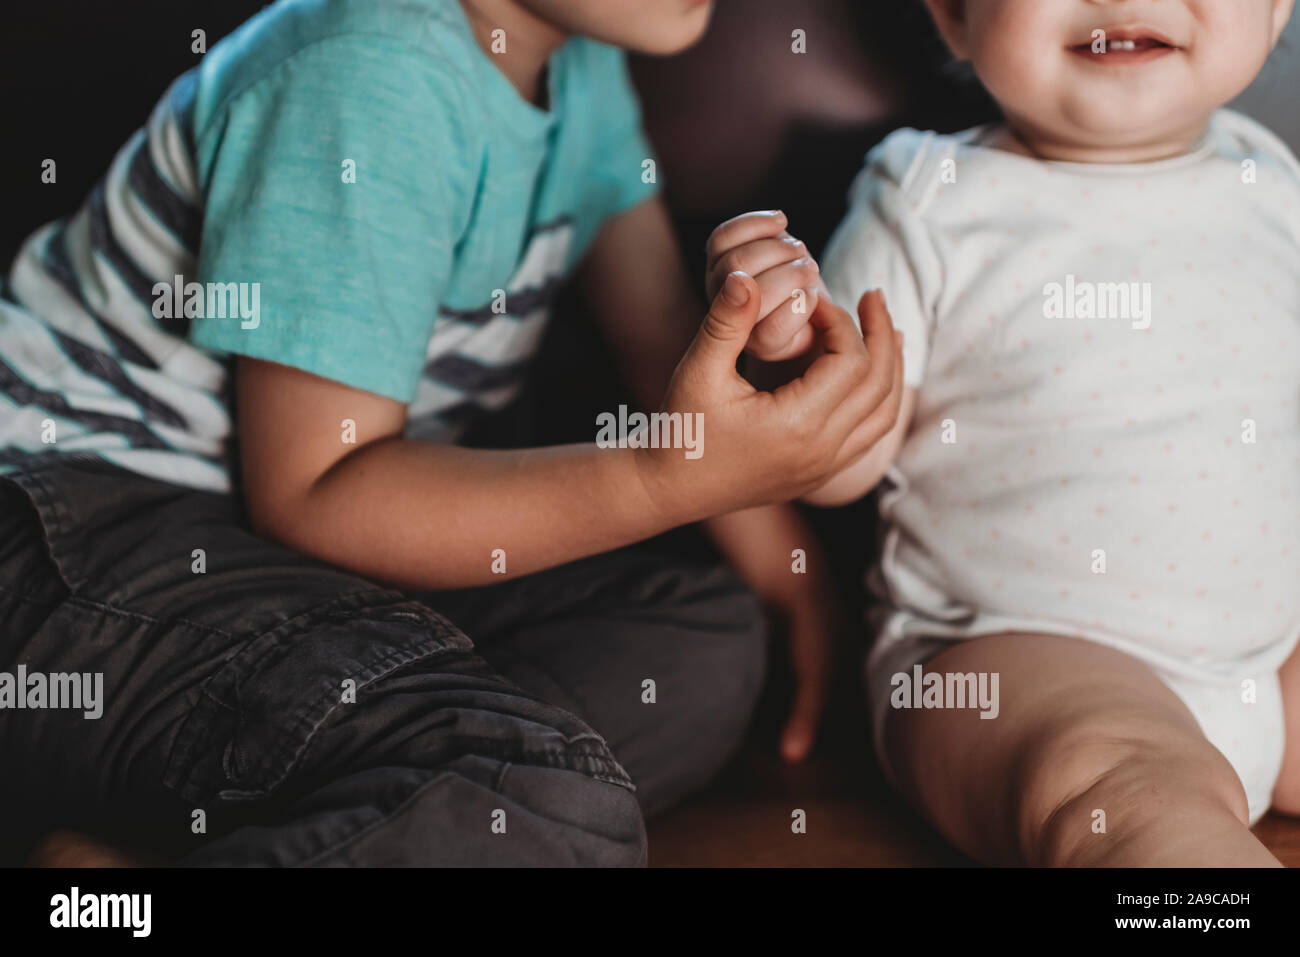 Big brother holding hand of smiling baby sister polkadot Onesie Banque D'Images